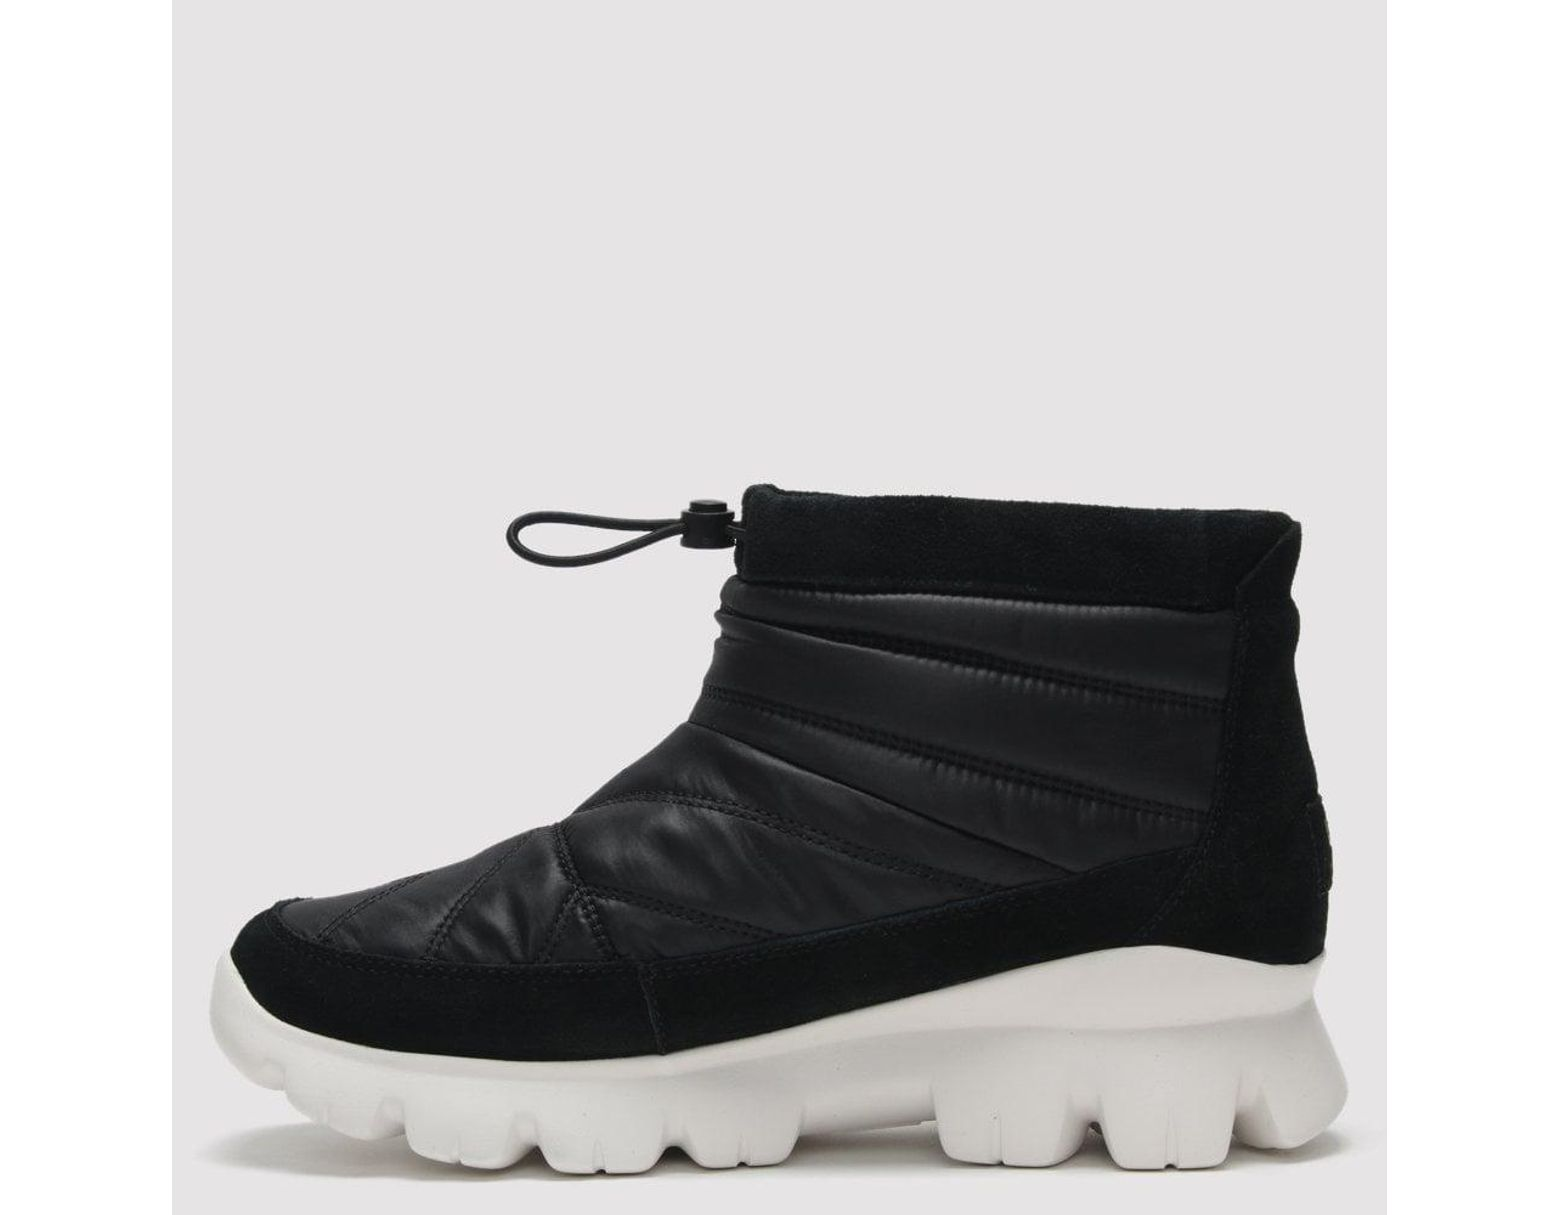 99eb05884d5 UGG Centara Black Nylon & Suede Ankle Boots in Black - Lyst